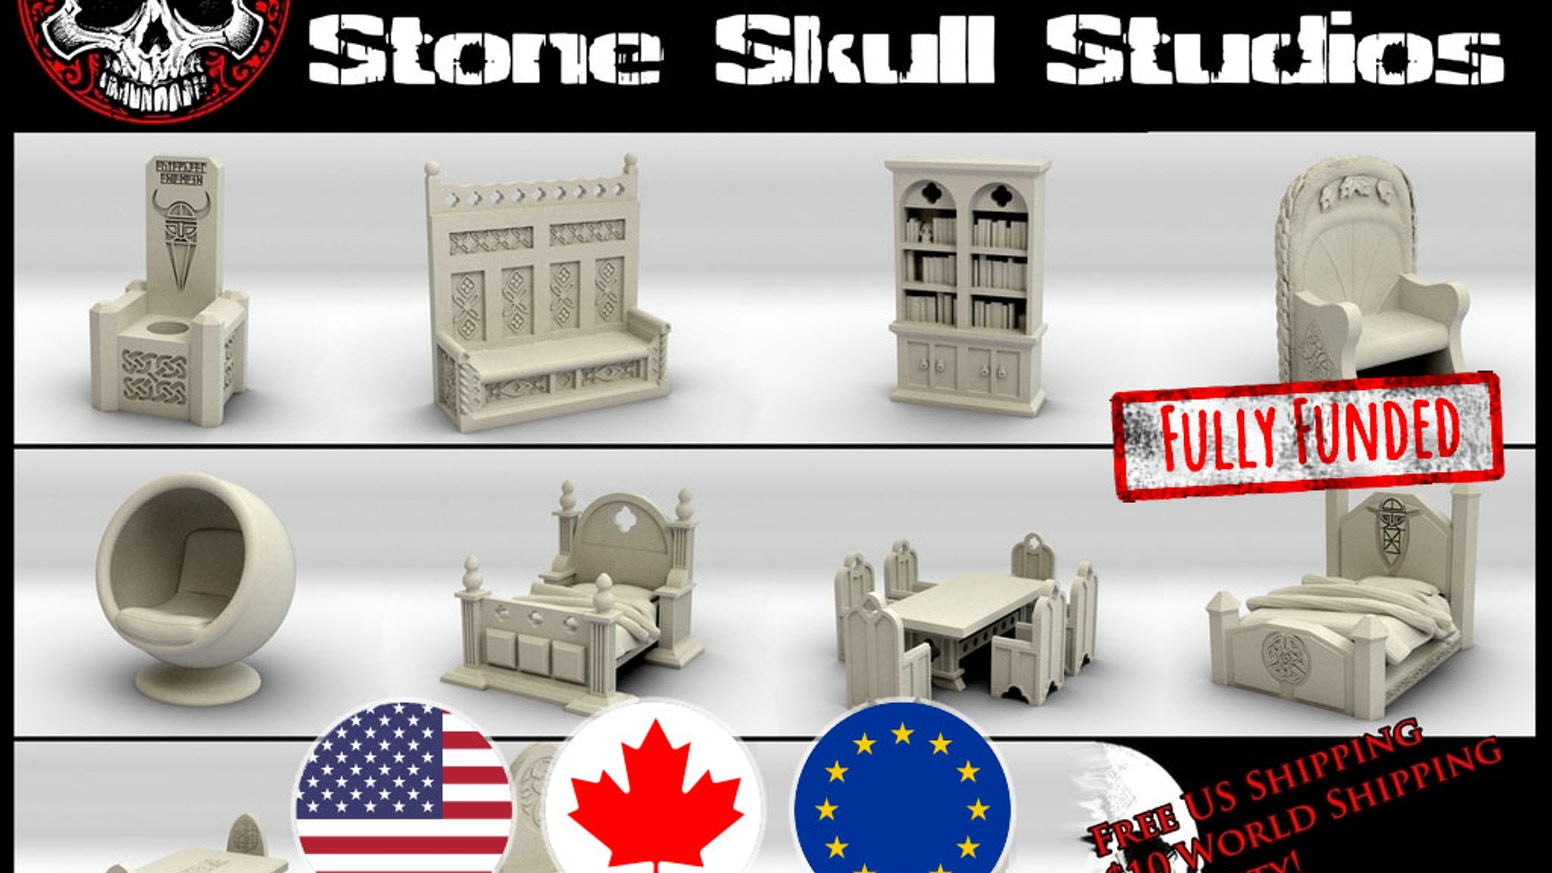 28mm Scale Furniture and accessories for both Fantasy and SciFi tabletop gaming worlds. Cast in resin from high resolution 3d prints.